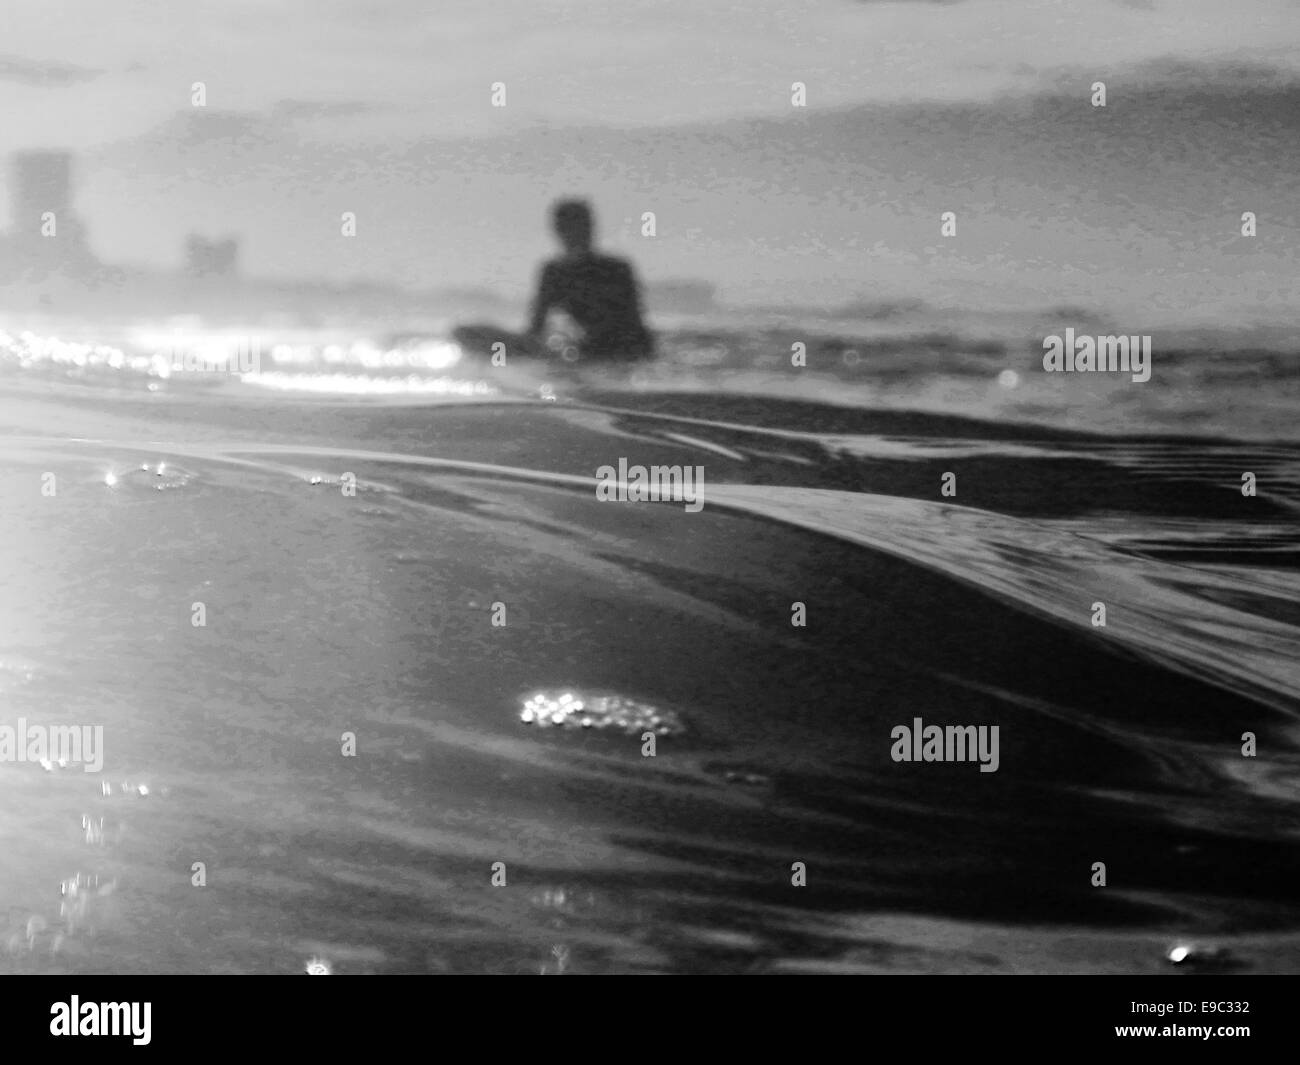 Surfer waiting for wave in ocean BW - Stock Image